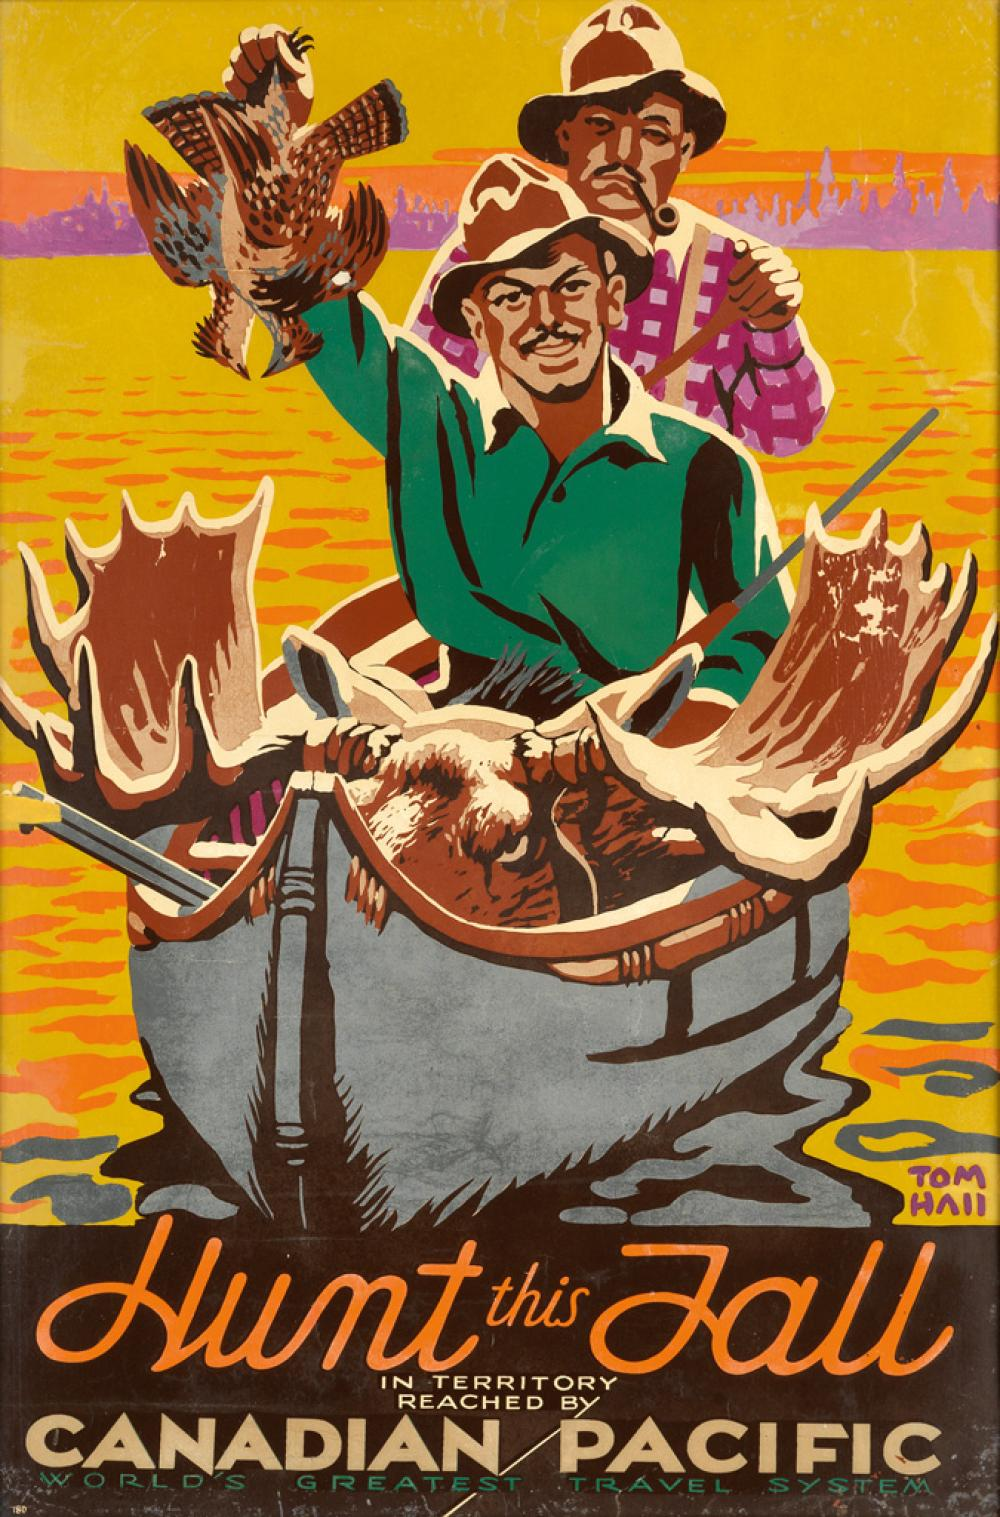 TOM HALL (1885-1972). HUNT THIS FALL / CANADIAN PACIFIC. Circa 1940. 36x23 inches, 91x60 cm.